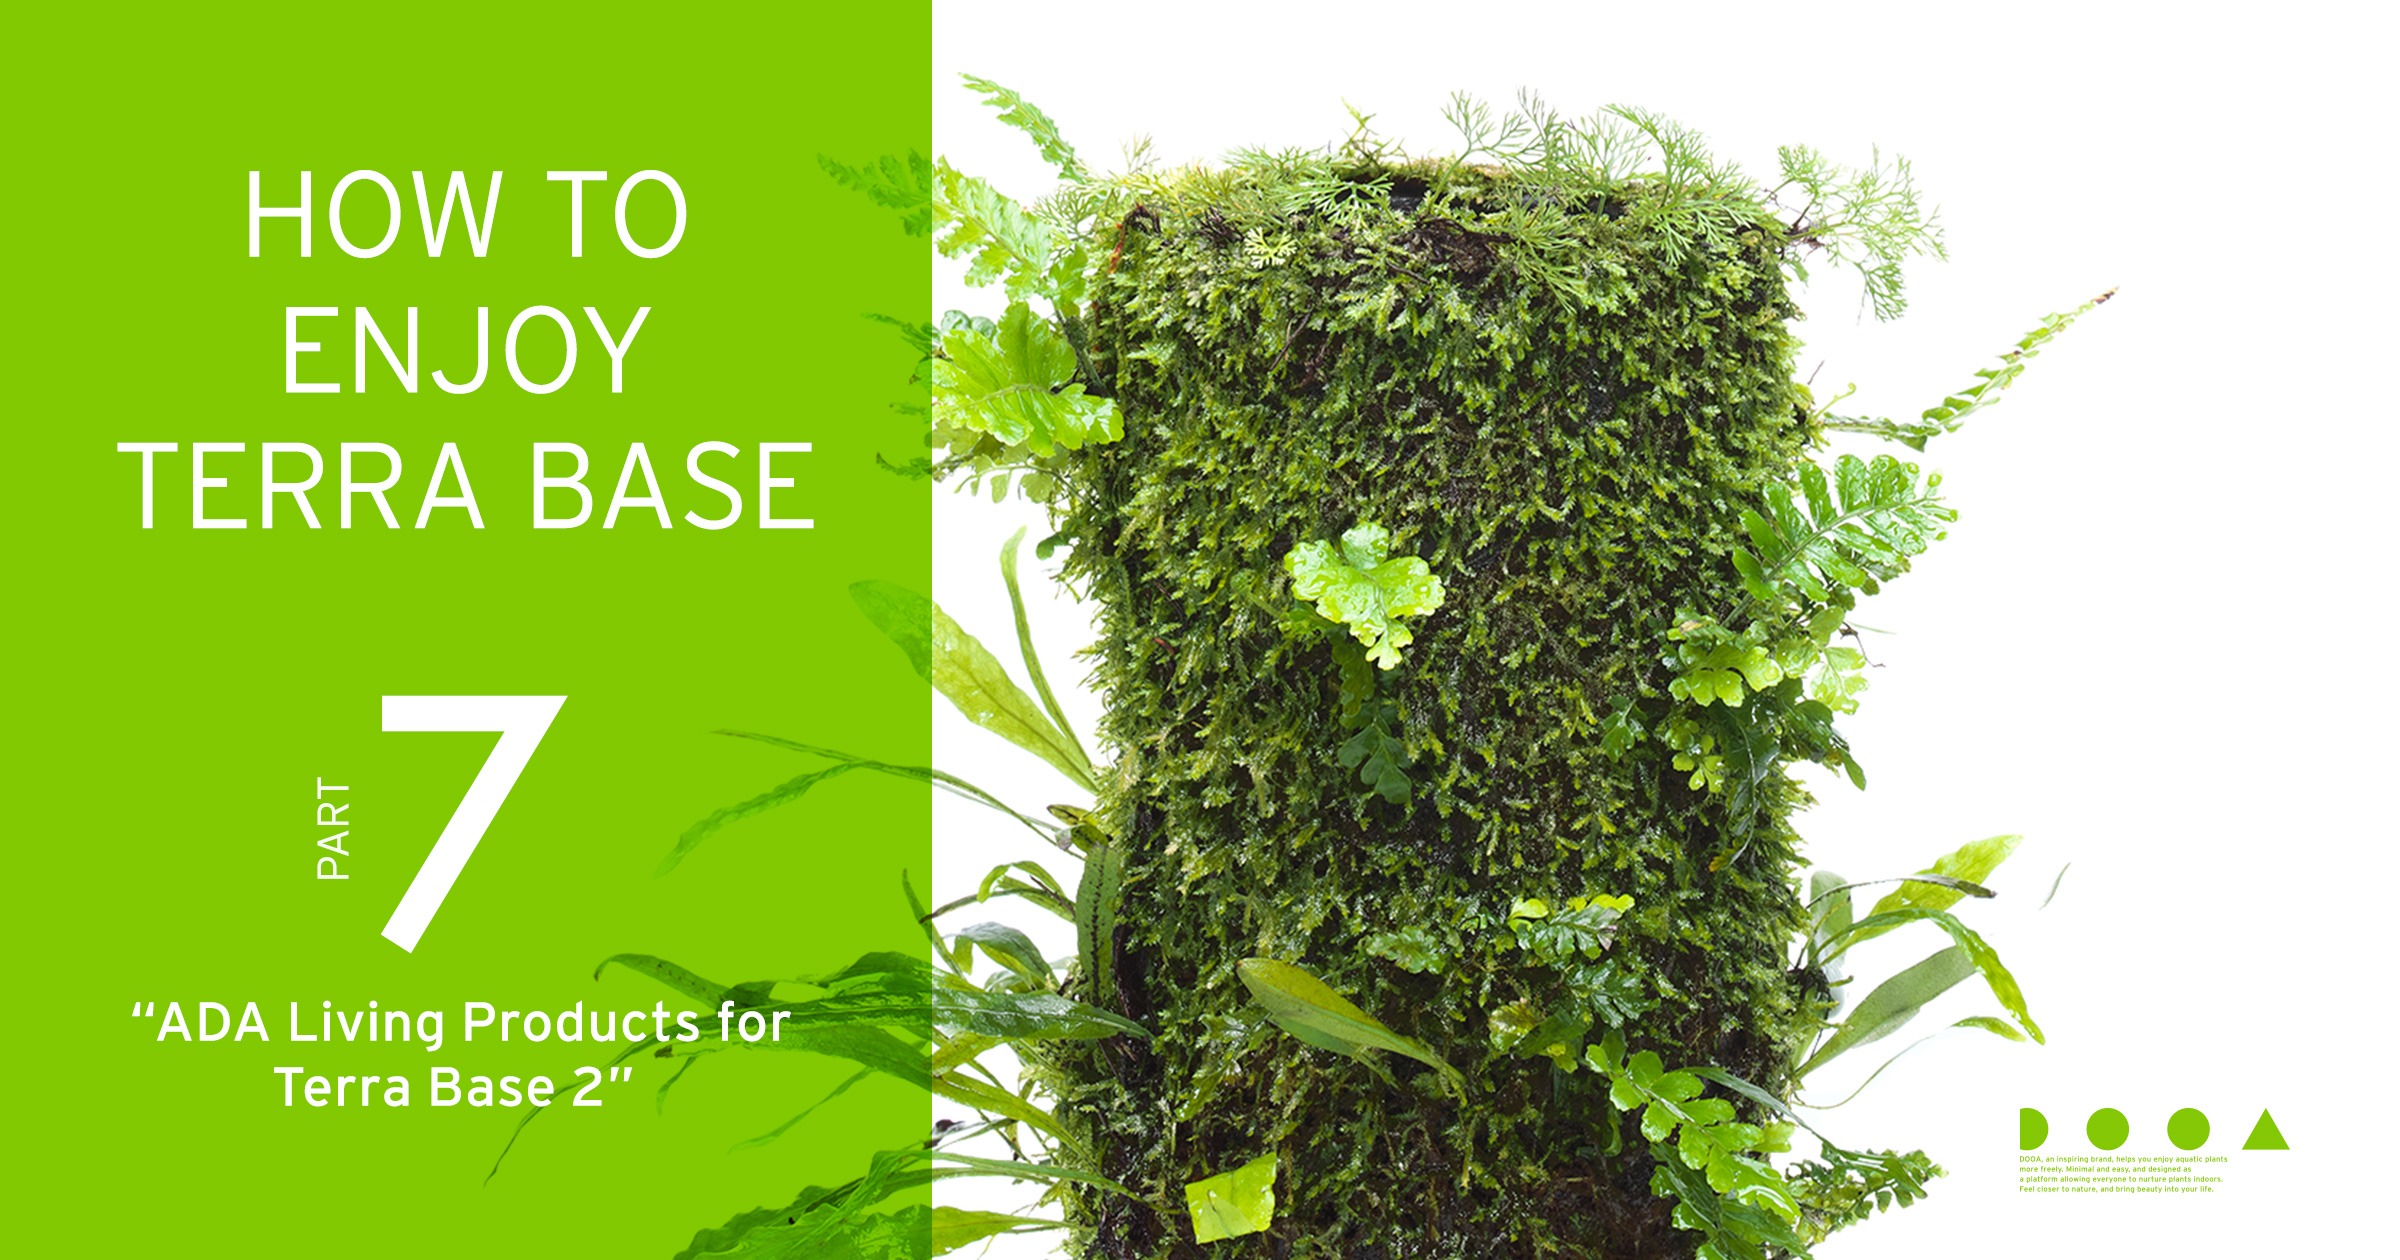 """HOW TO ENJOY TERRA BASE """"ADA Living Products for Terra Base Vol.2"""